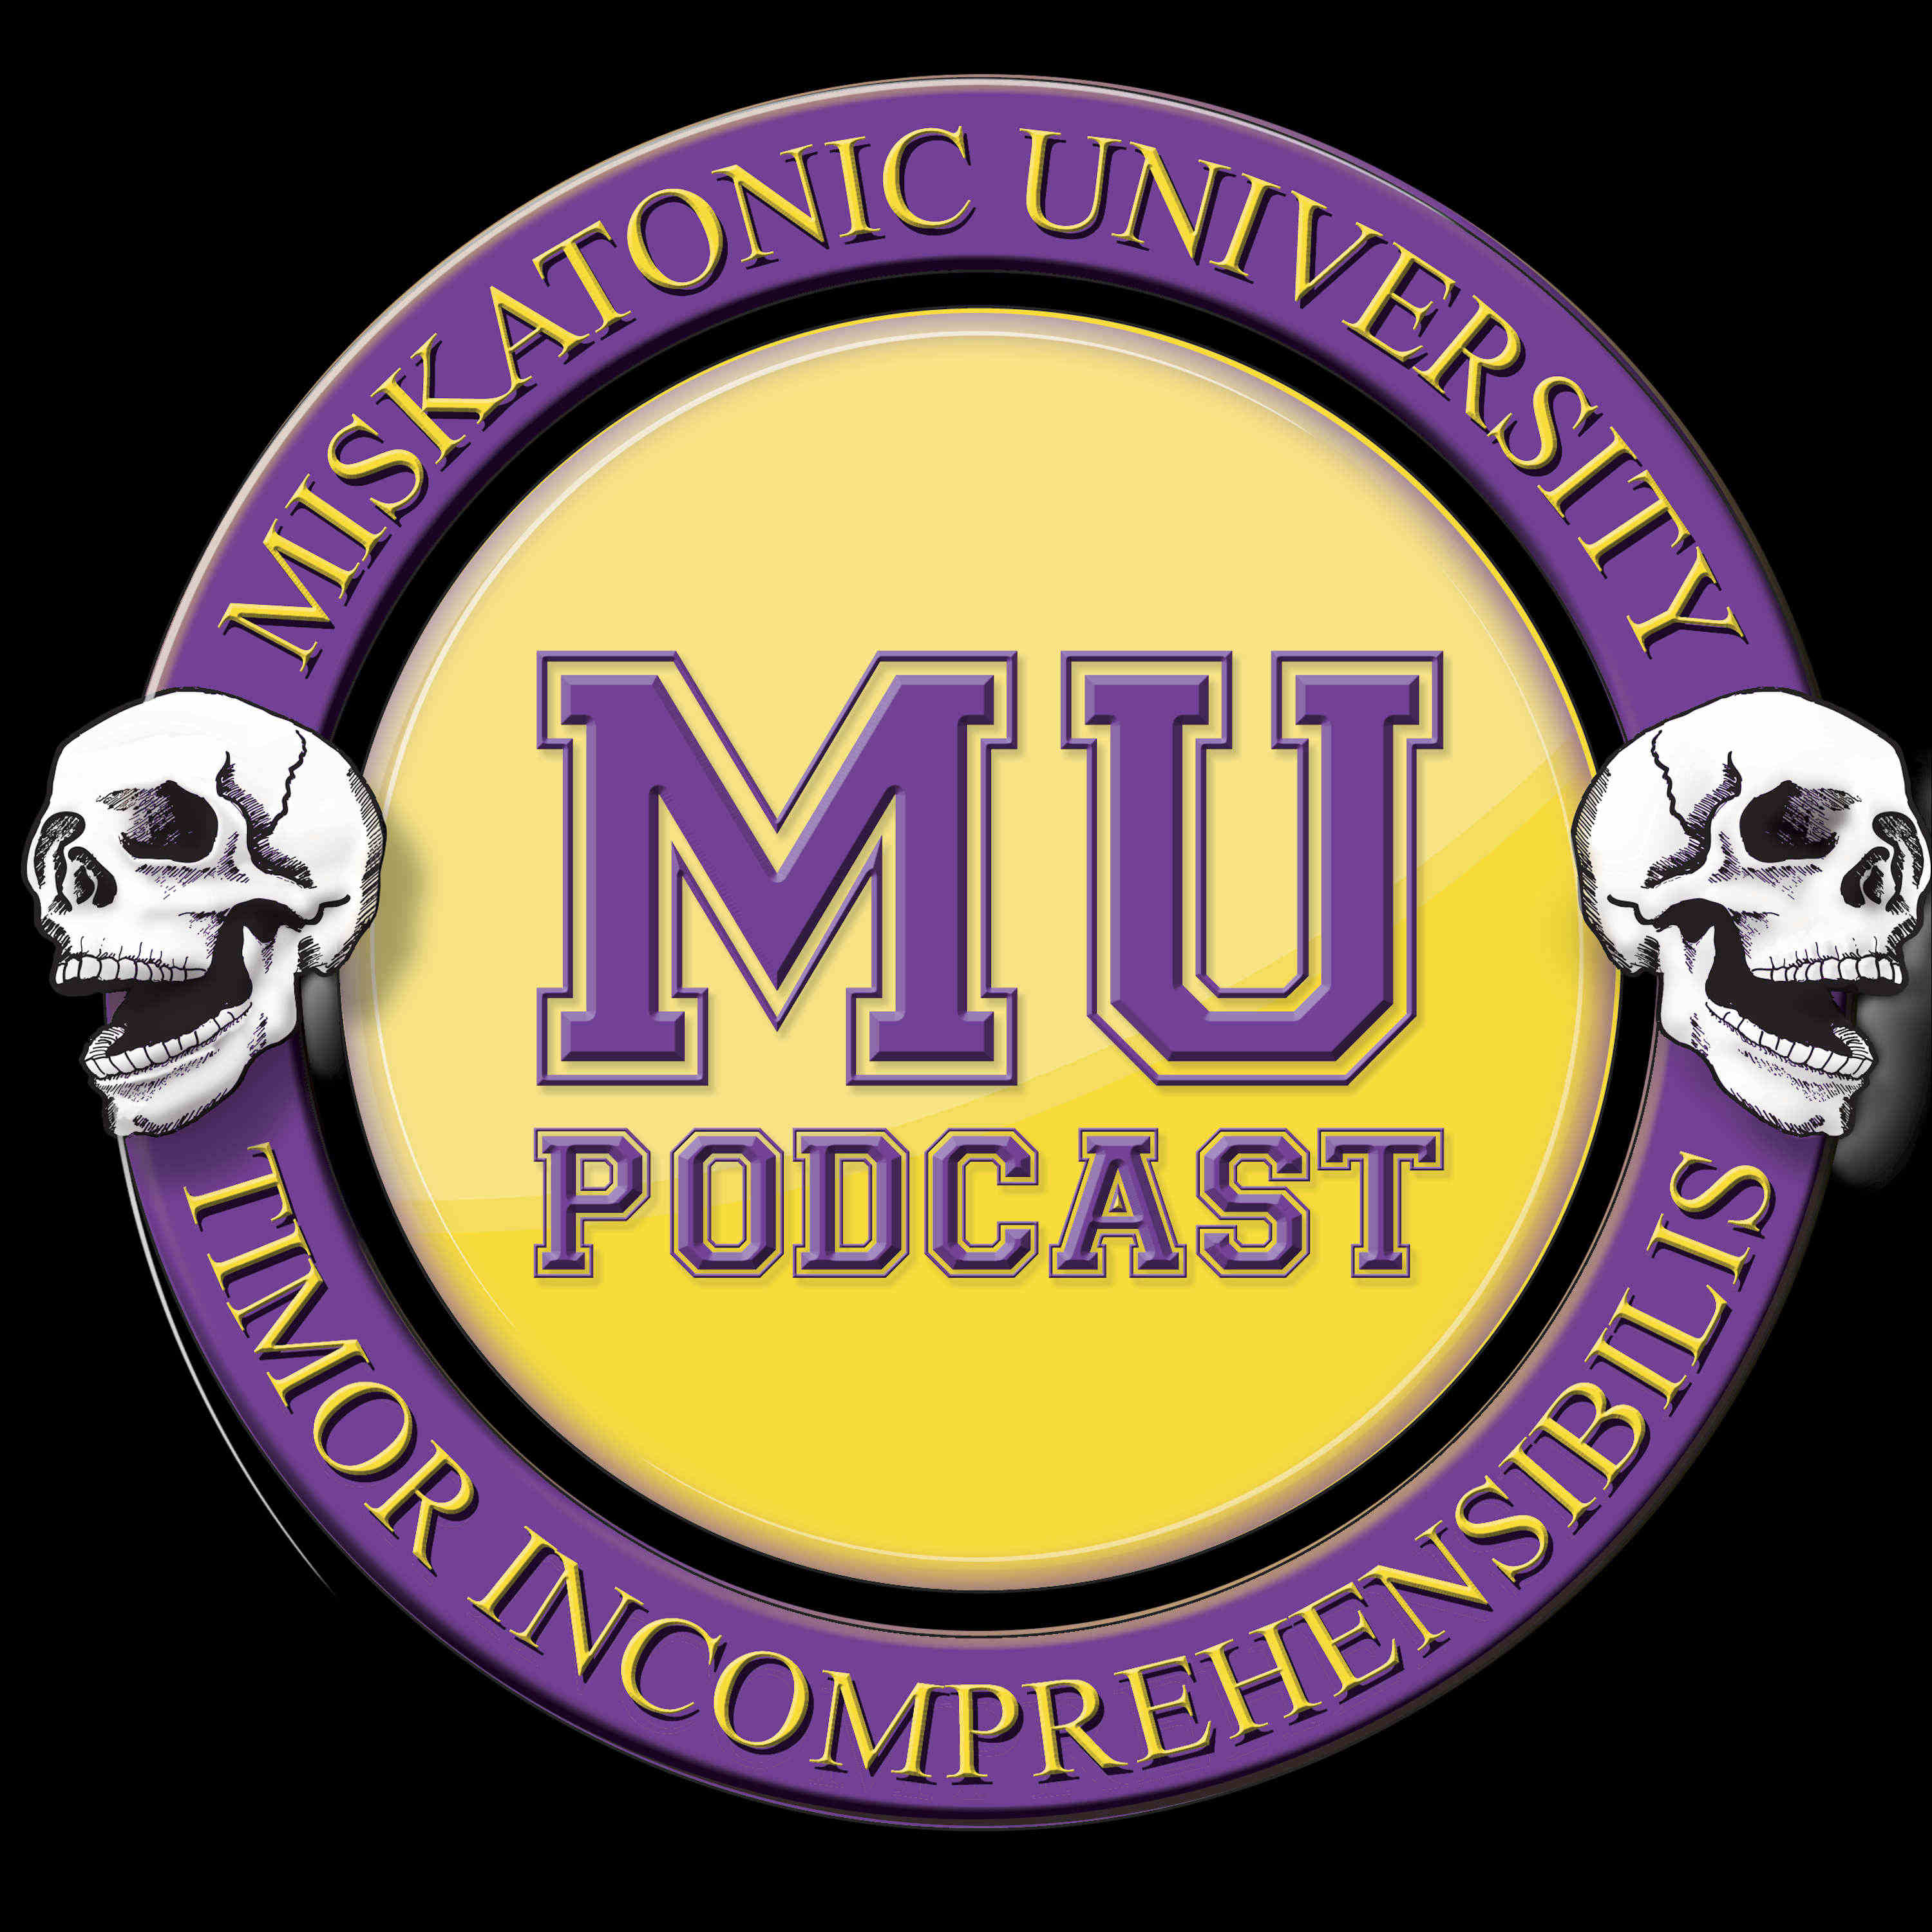 Miskatonic University Podcast